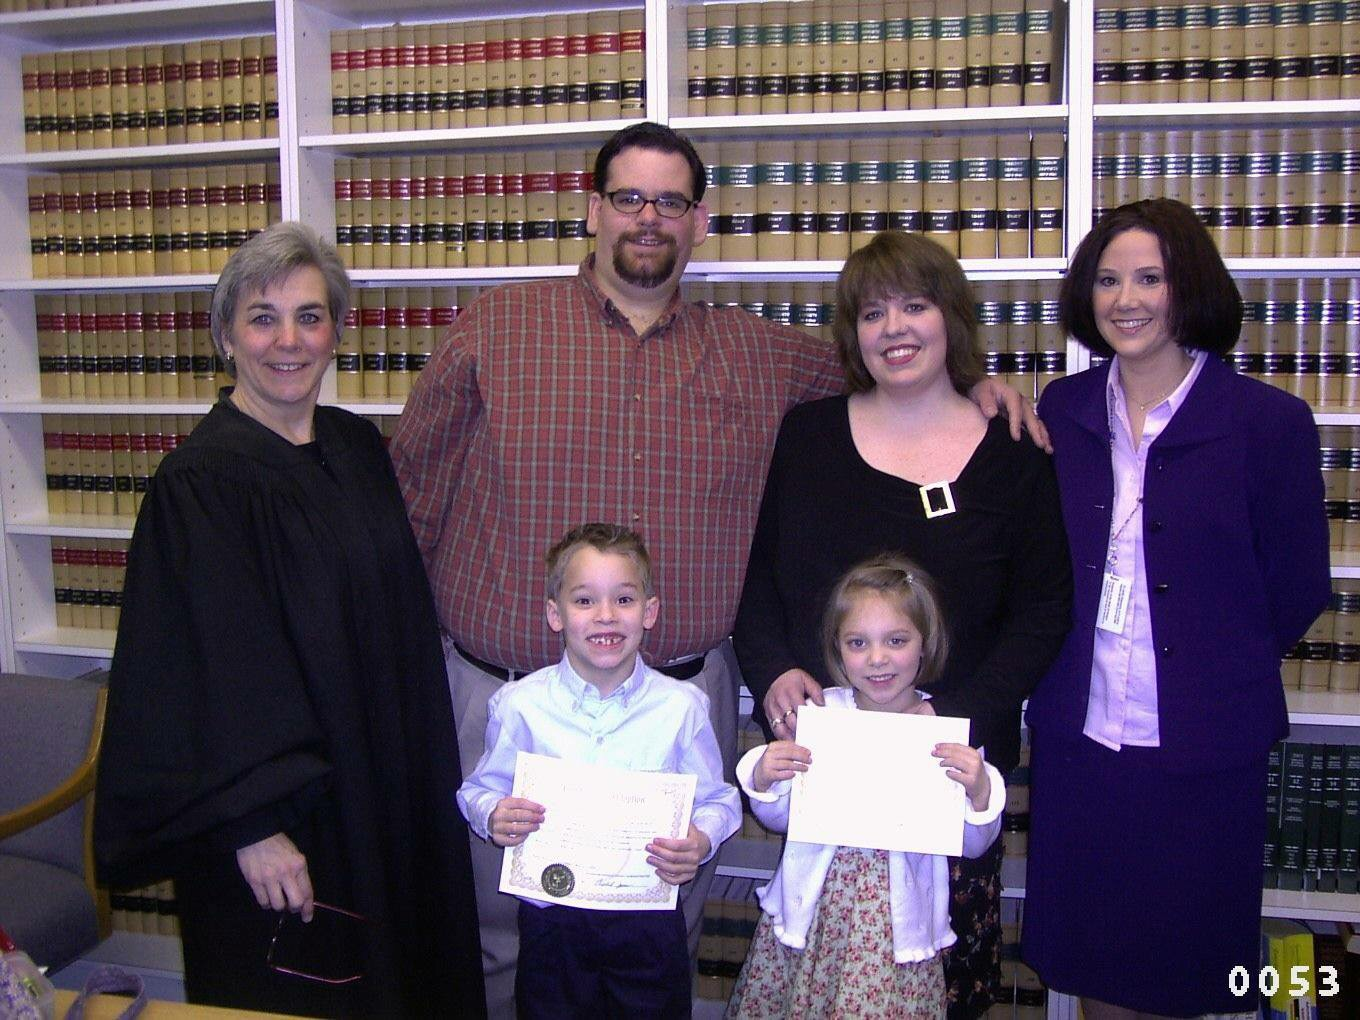 Adoption Day, March 3rd 2005